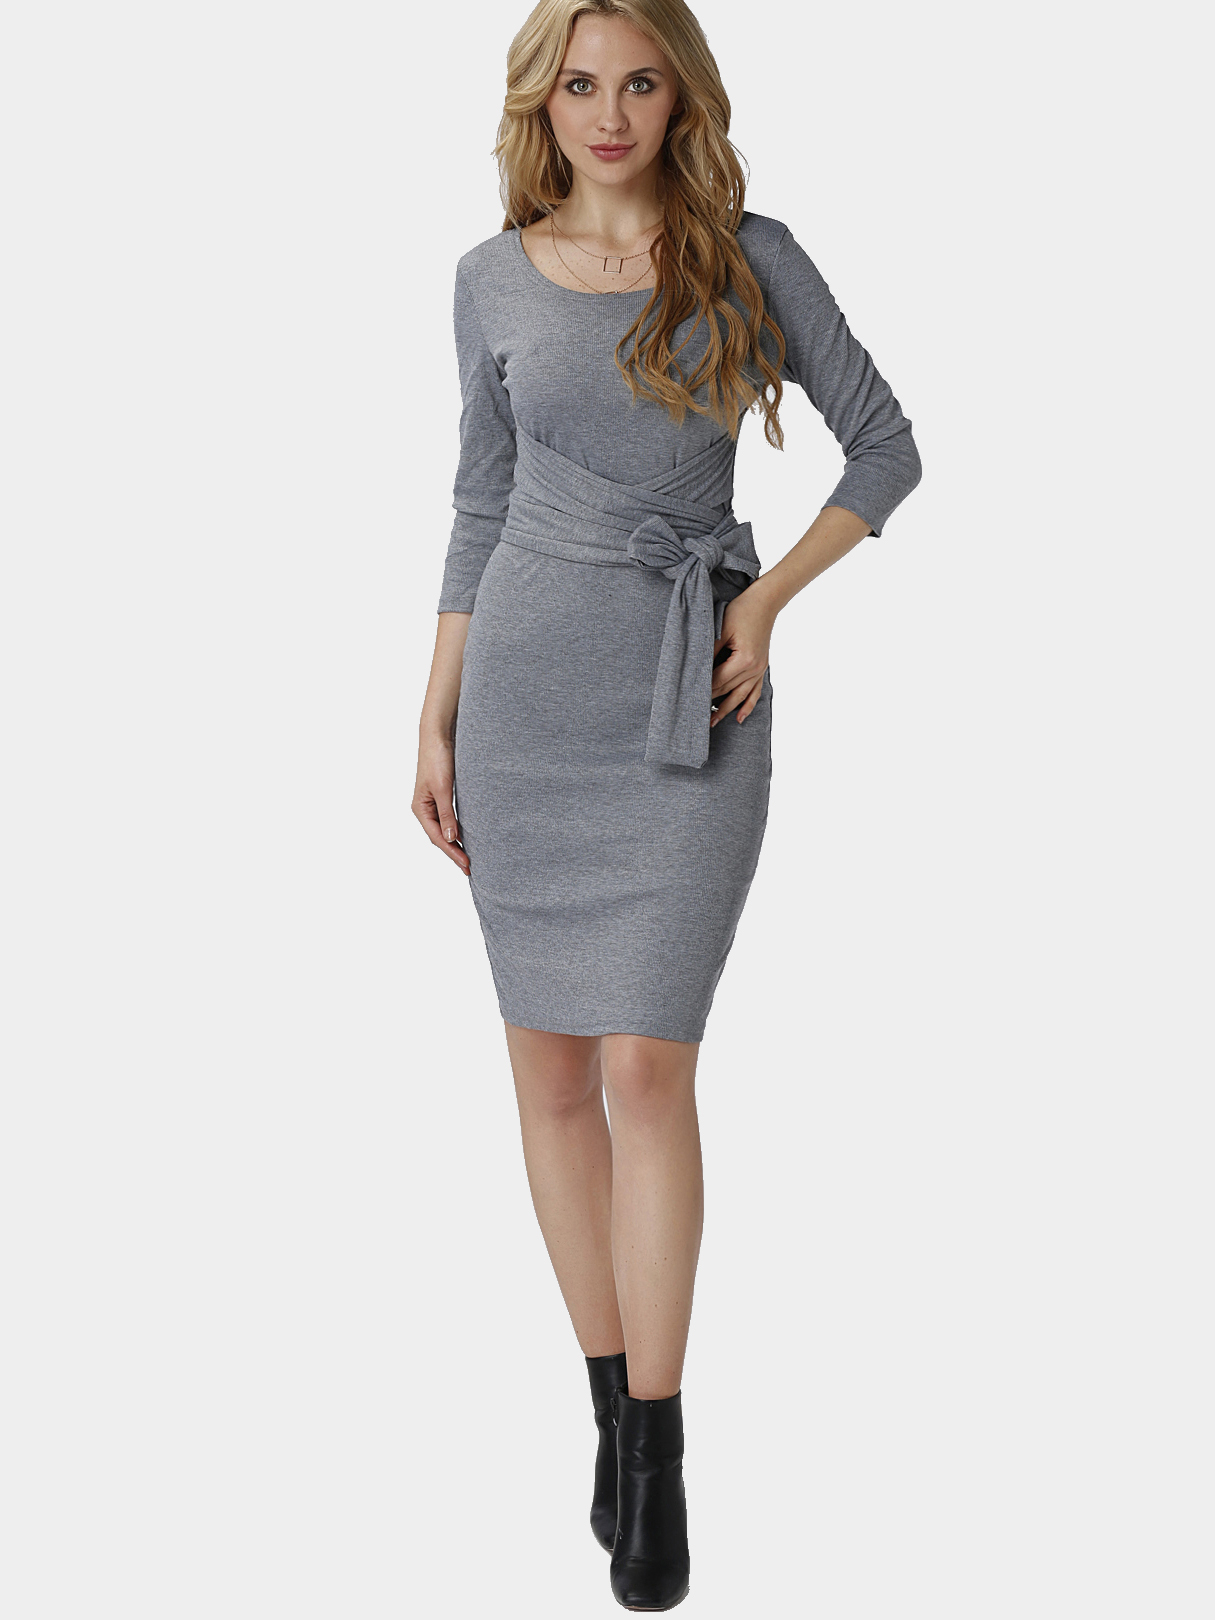 Grey Thread Round Neck Lace-up Design Party Dress